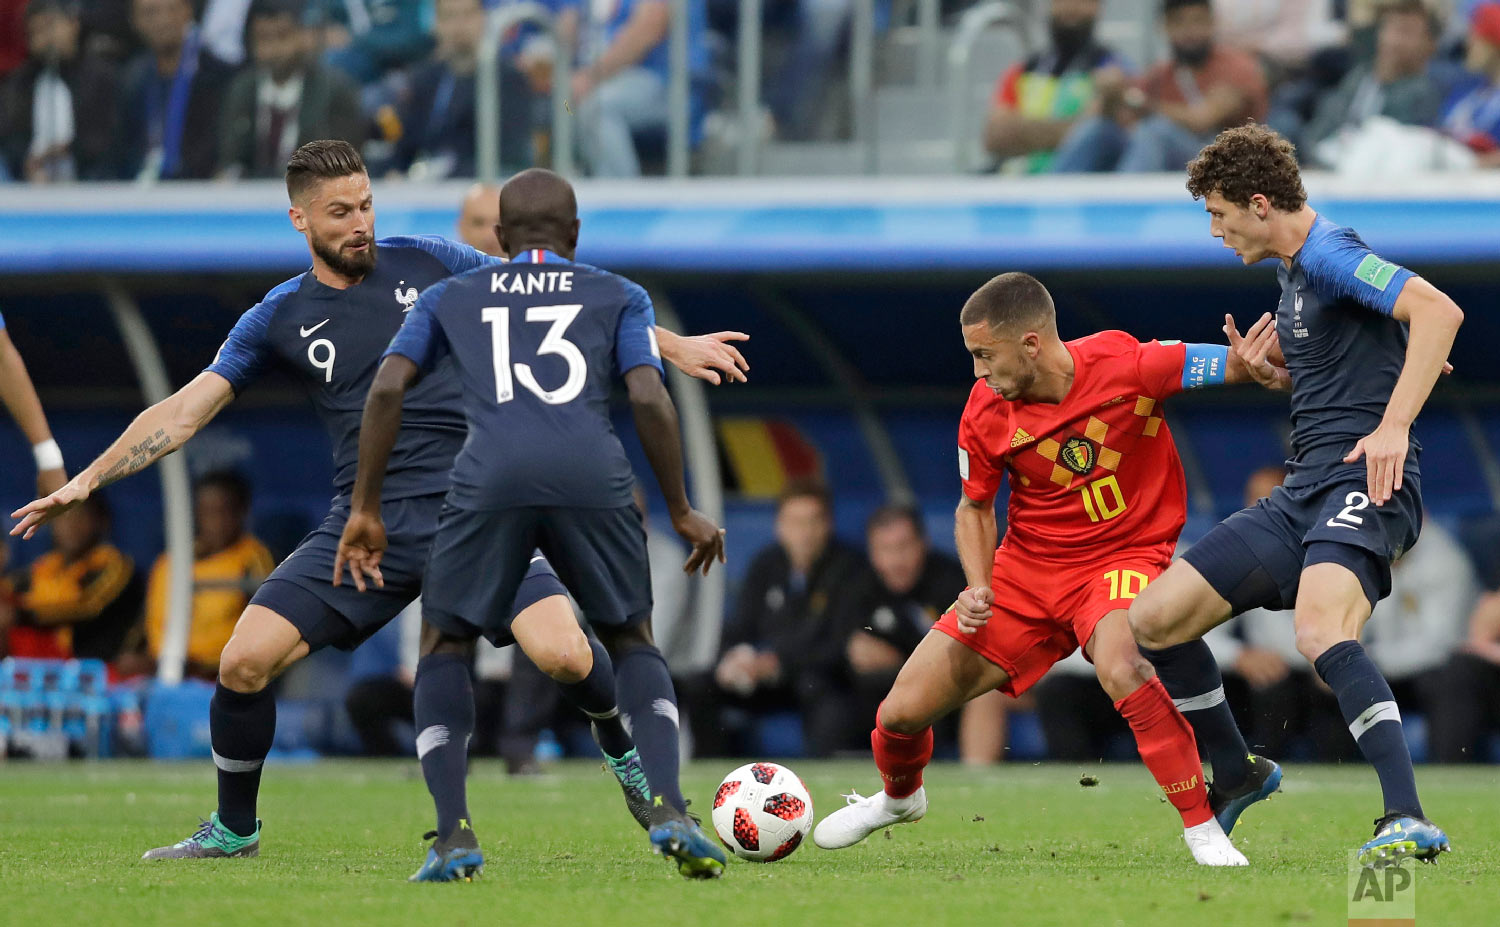 Belgium's Eden Hazard, second right is challenged for the ball by France's Benjamin Pavard, right and France's Olivier Giroud left, during the semifinal match between France and Belgium at the 2018 soccer World Cup in the St. Petersburg Stadium in, St. Petersburg, Russia, Tuesday, July 10, 2018. (AP Photo/Natacha Pisarenko)